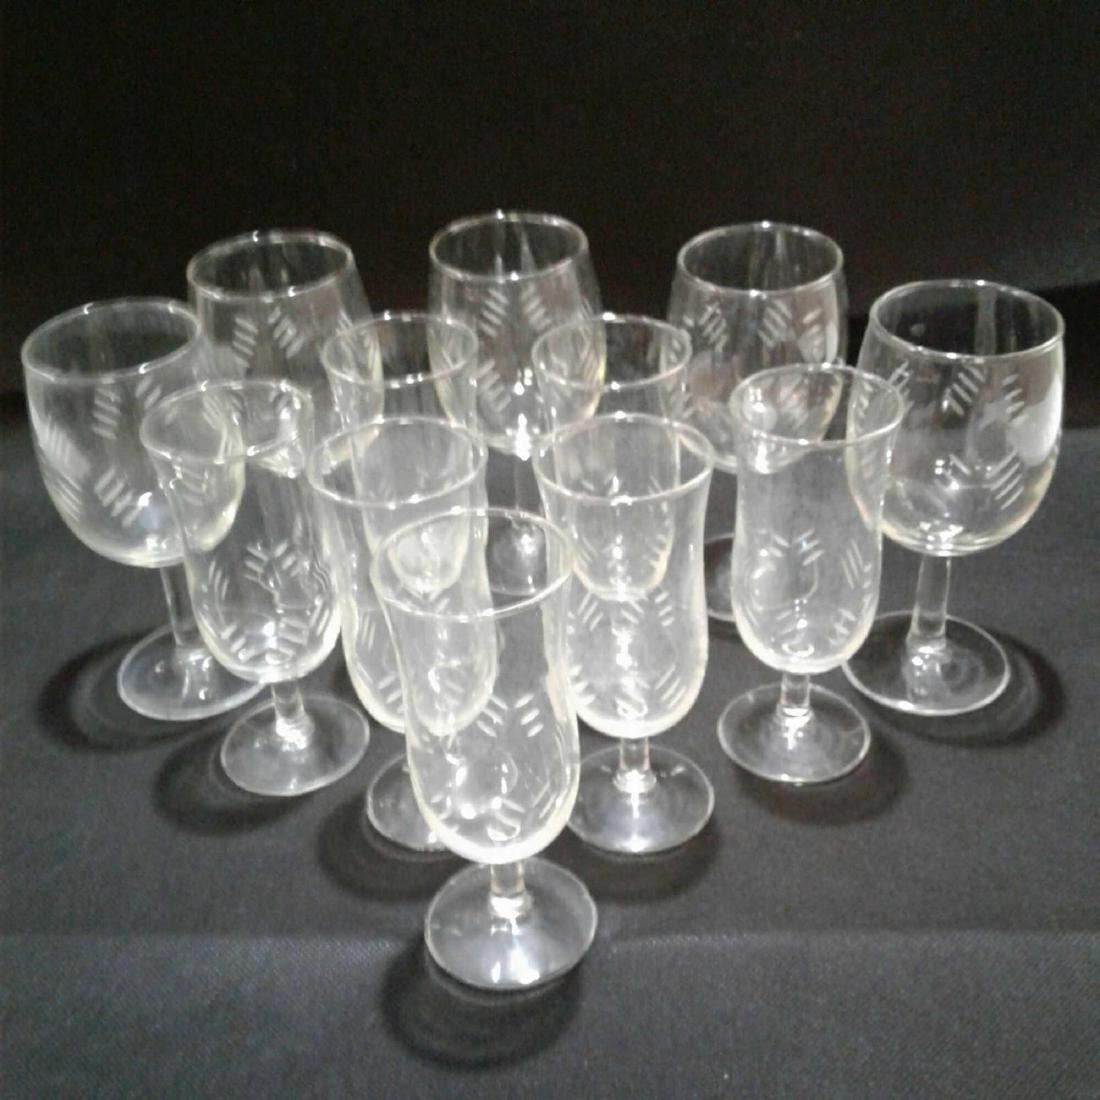 Hashmark Etched Clear Glass Stemware (12 pieces)